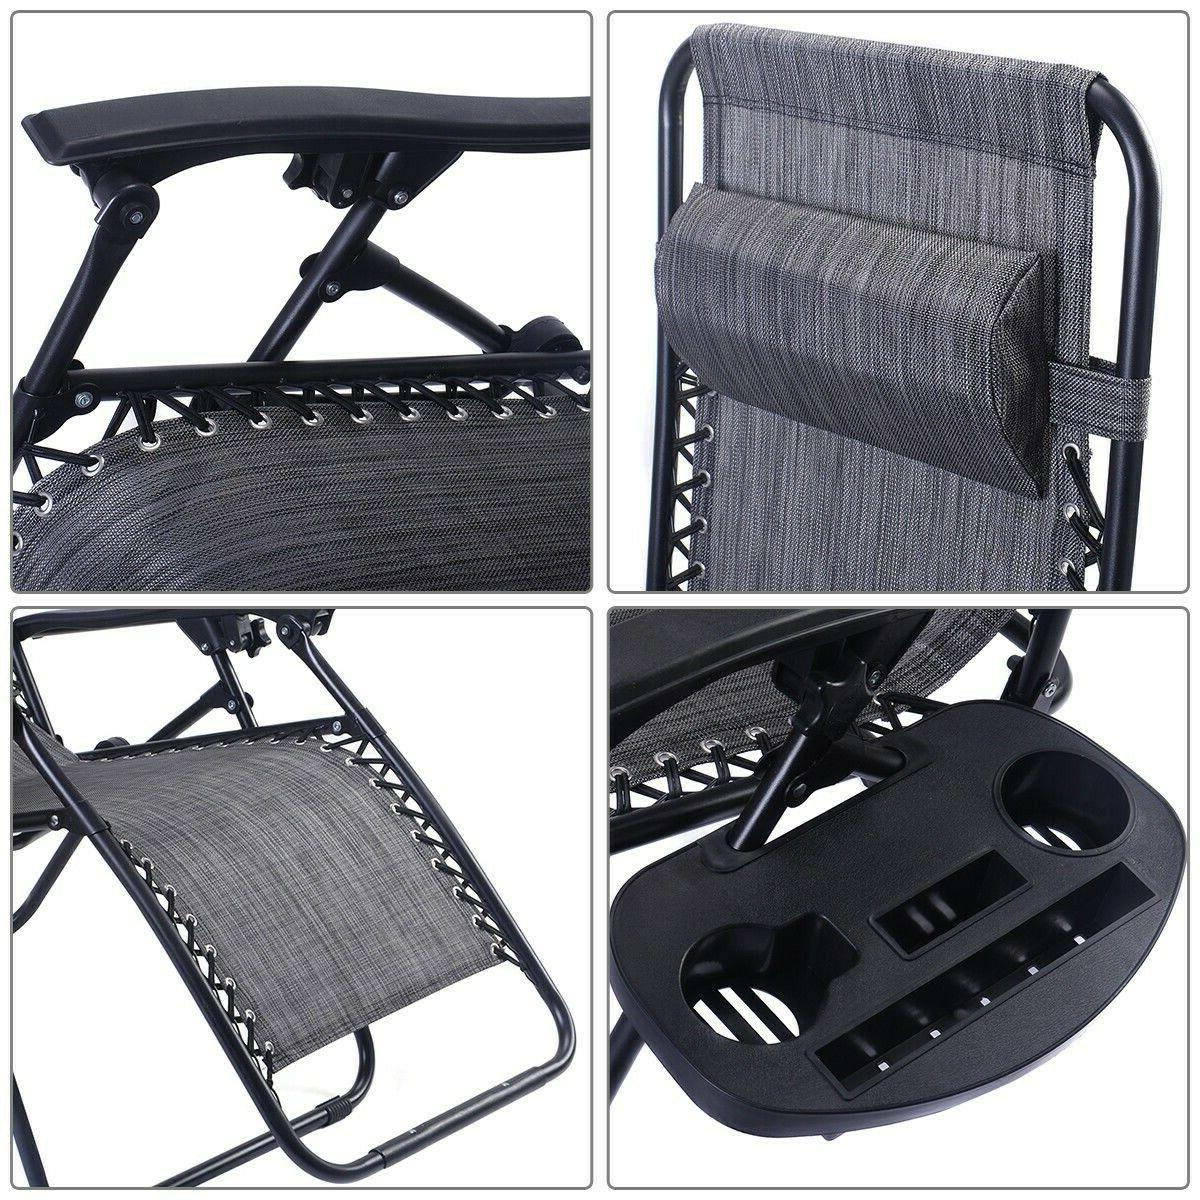 Folding Chaise Chairs Lounge Outdoor Beach Lawn